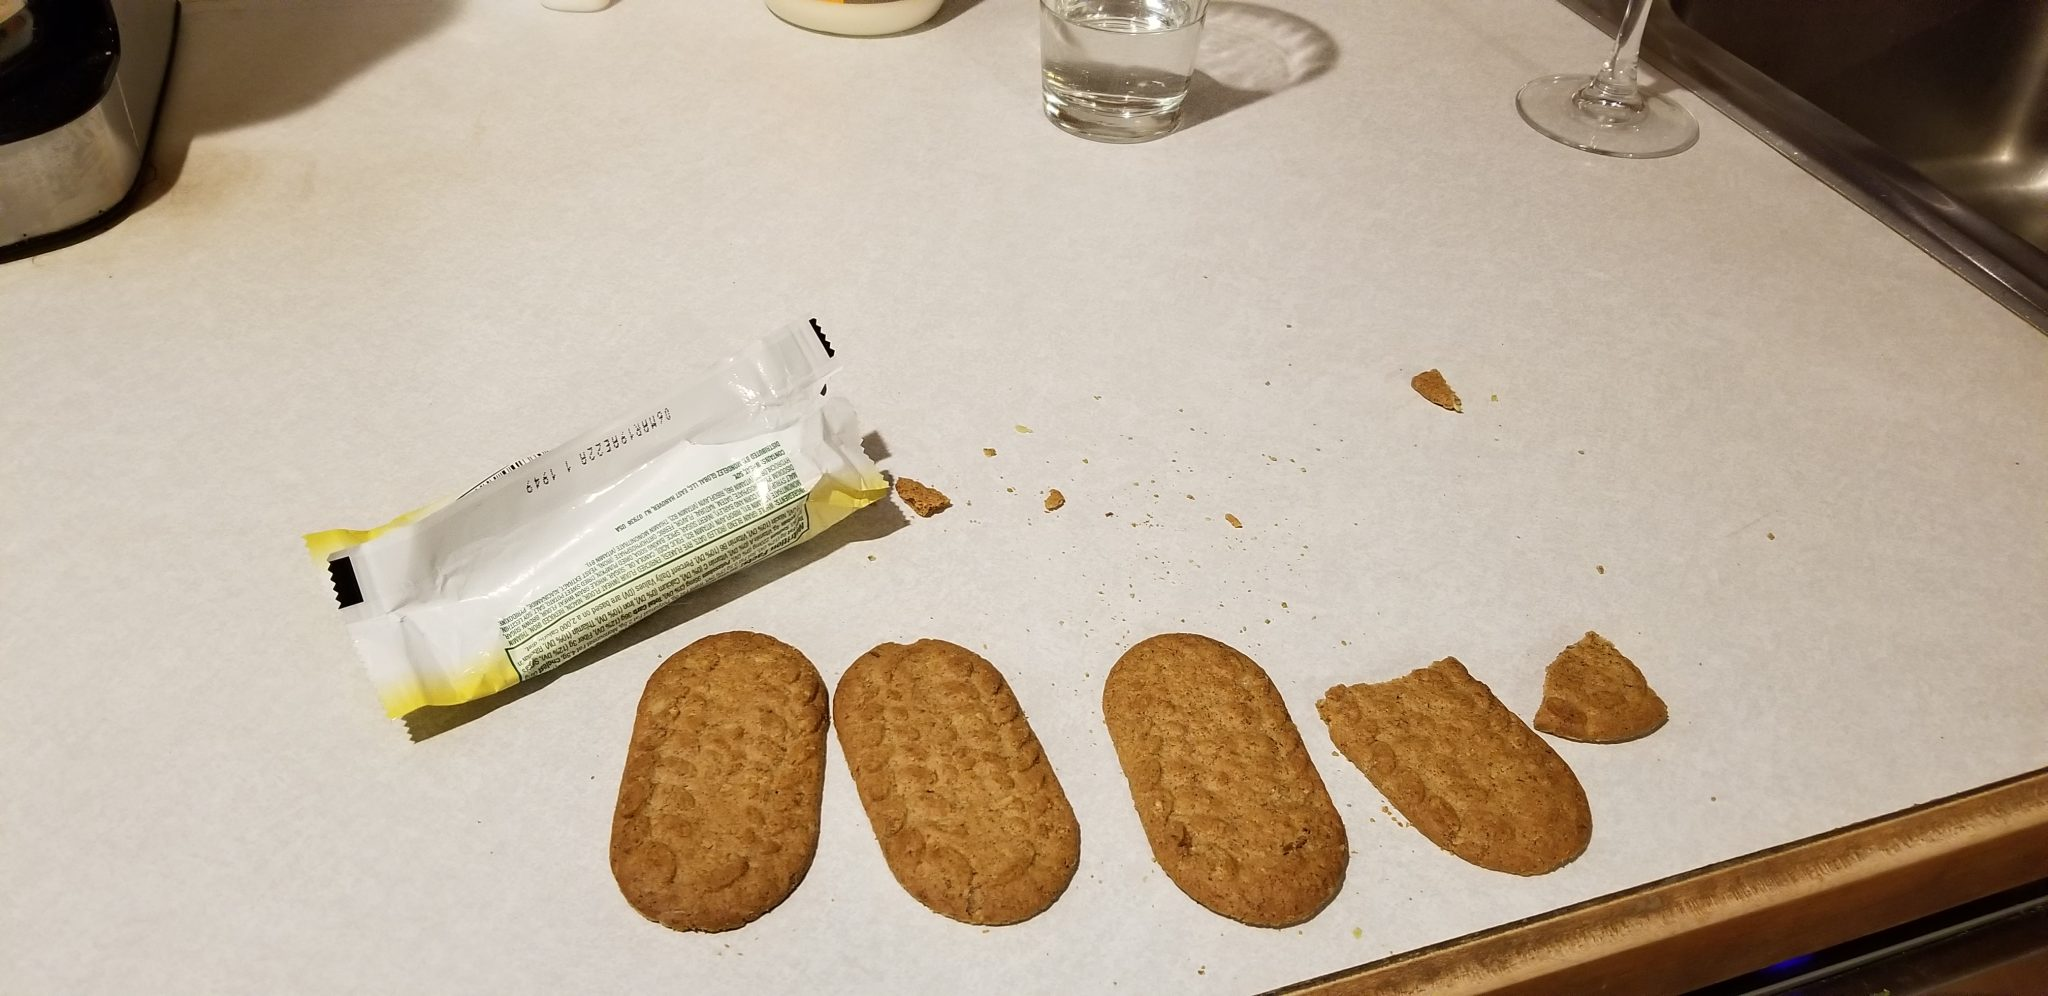 BelVita Pumpkin Spice Biscuits Laid Out on Counter